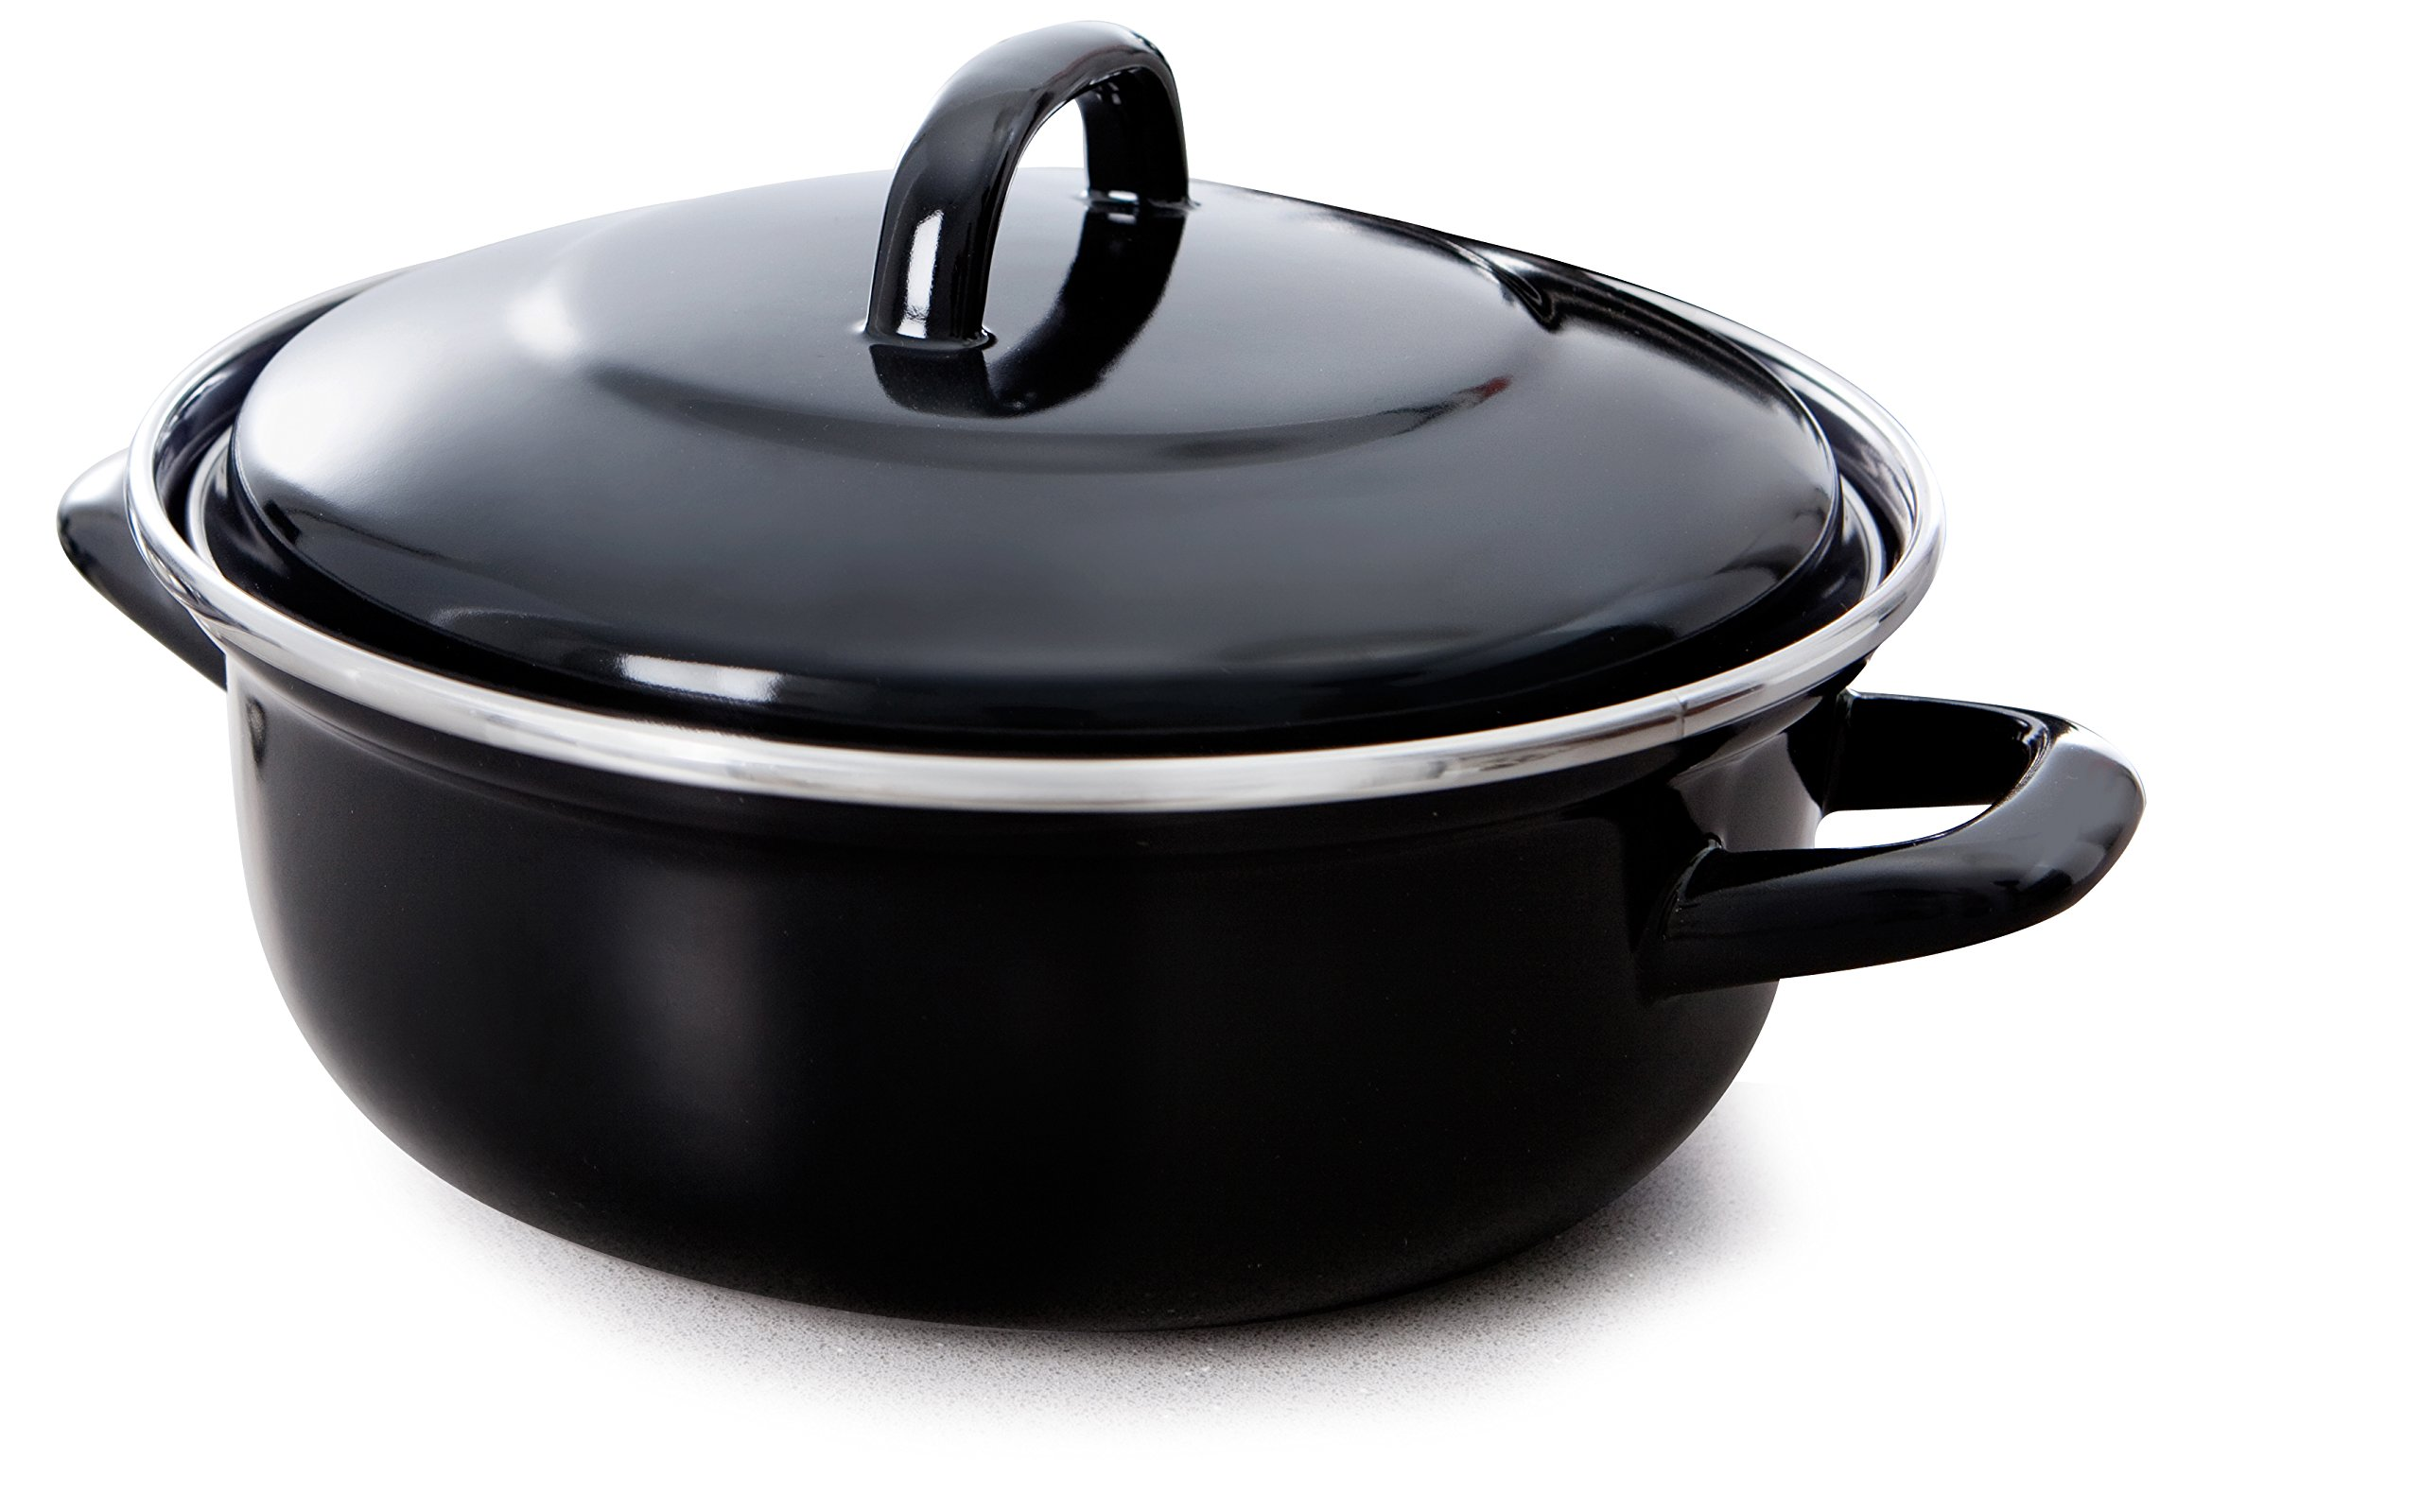 BK Cookware Fortalit B1208.530 Stewing Pan 30 cm 5 L by BK Cookware